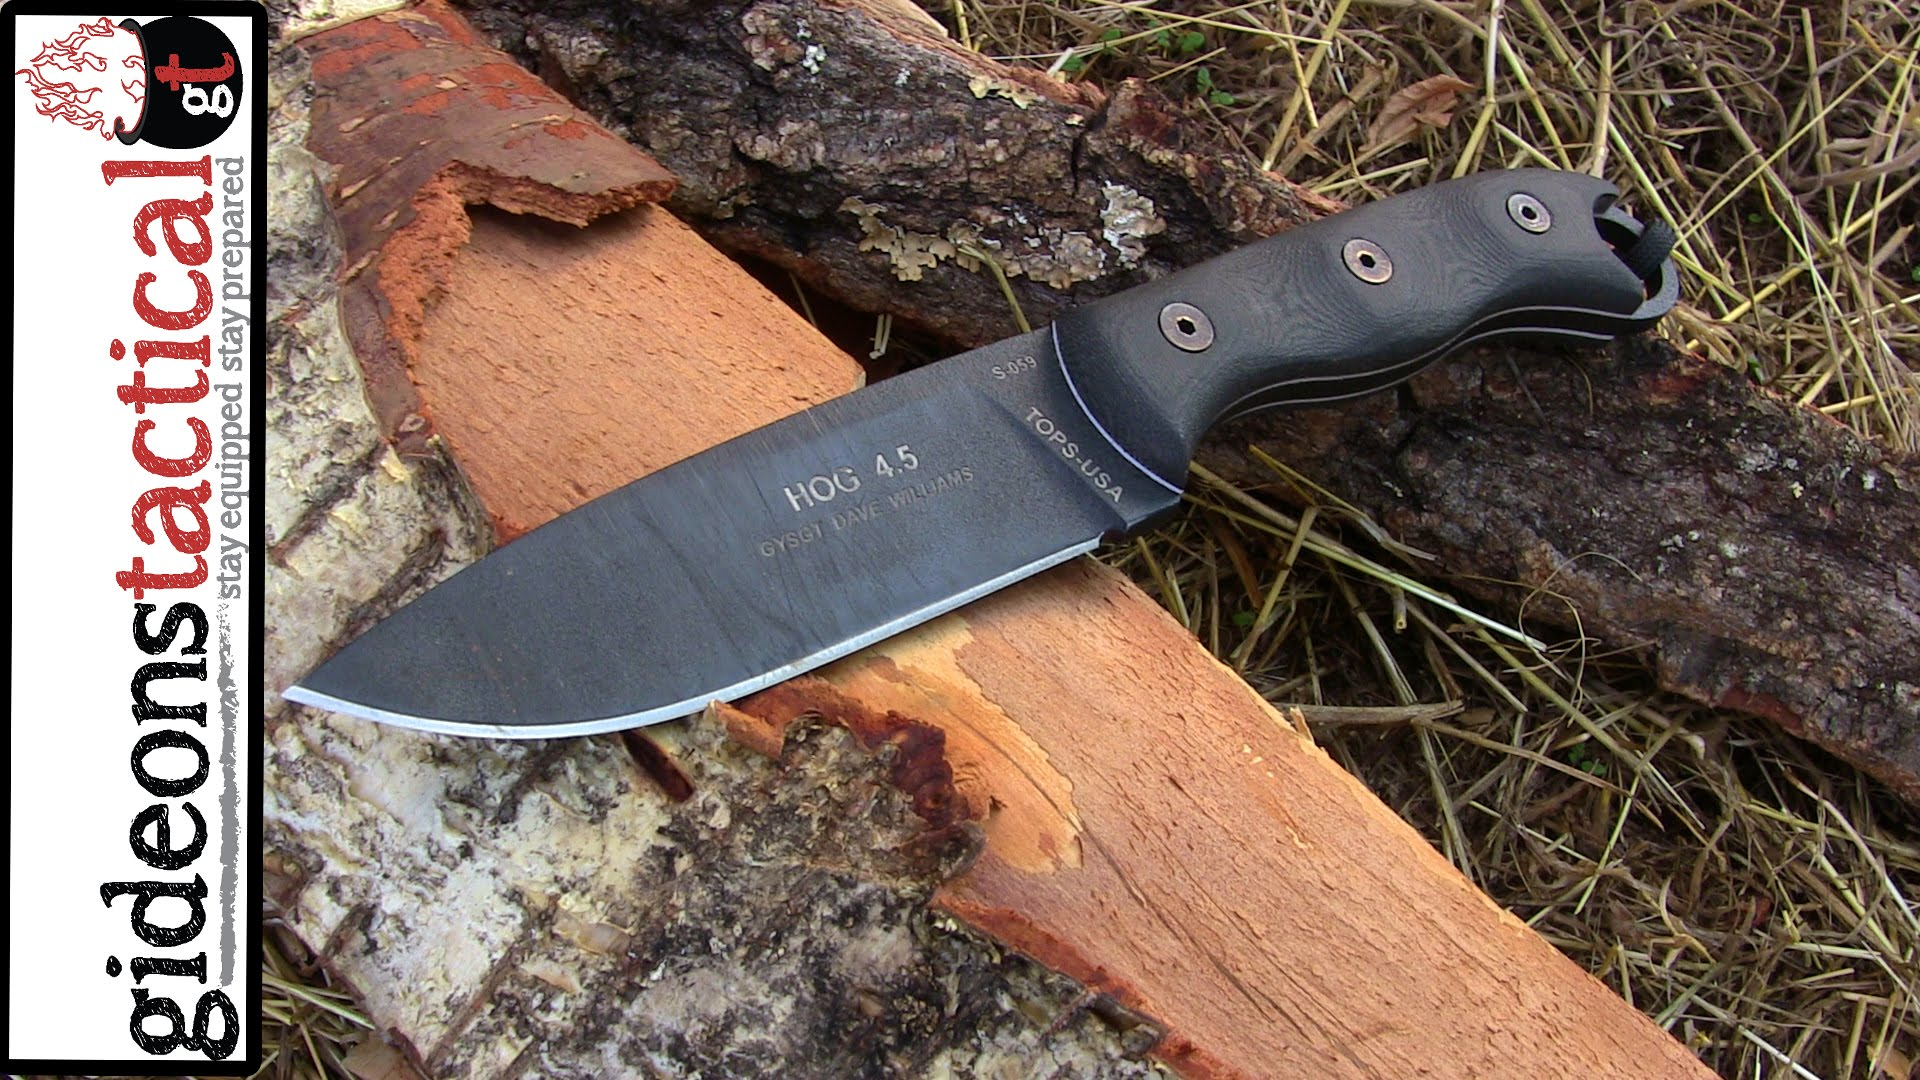 TOPS KNIVES HOG 4.5 Knife Review: Get Hunting